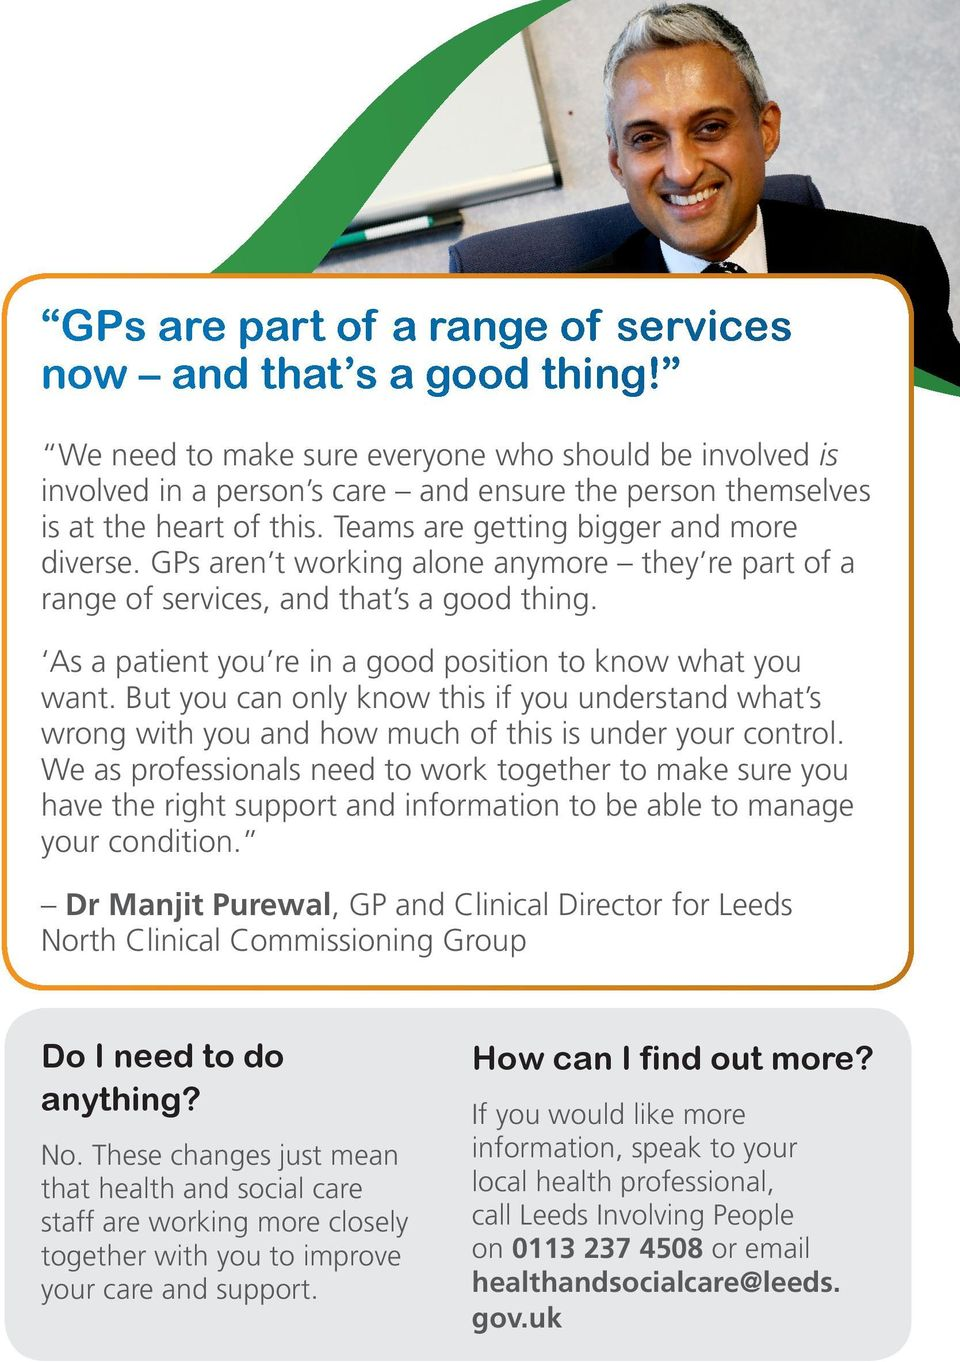 GPs aren t working alone anymore they re part of a range of services, and that s a good thing. As a patient you re in a good position to know what you want.